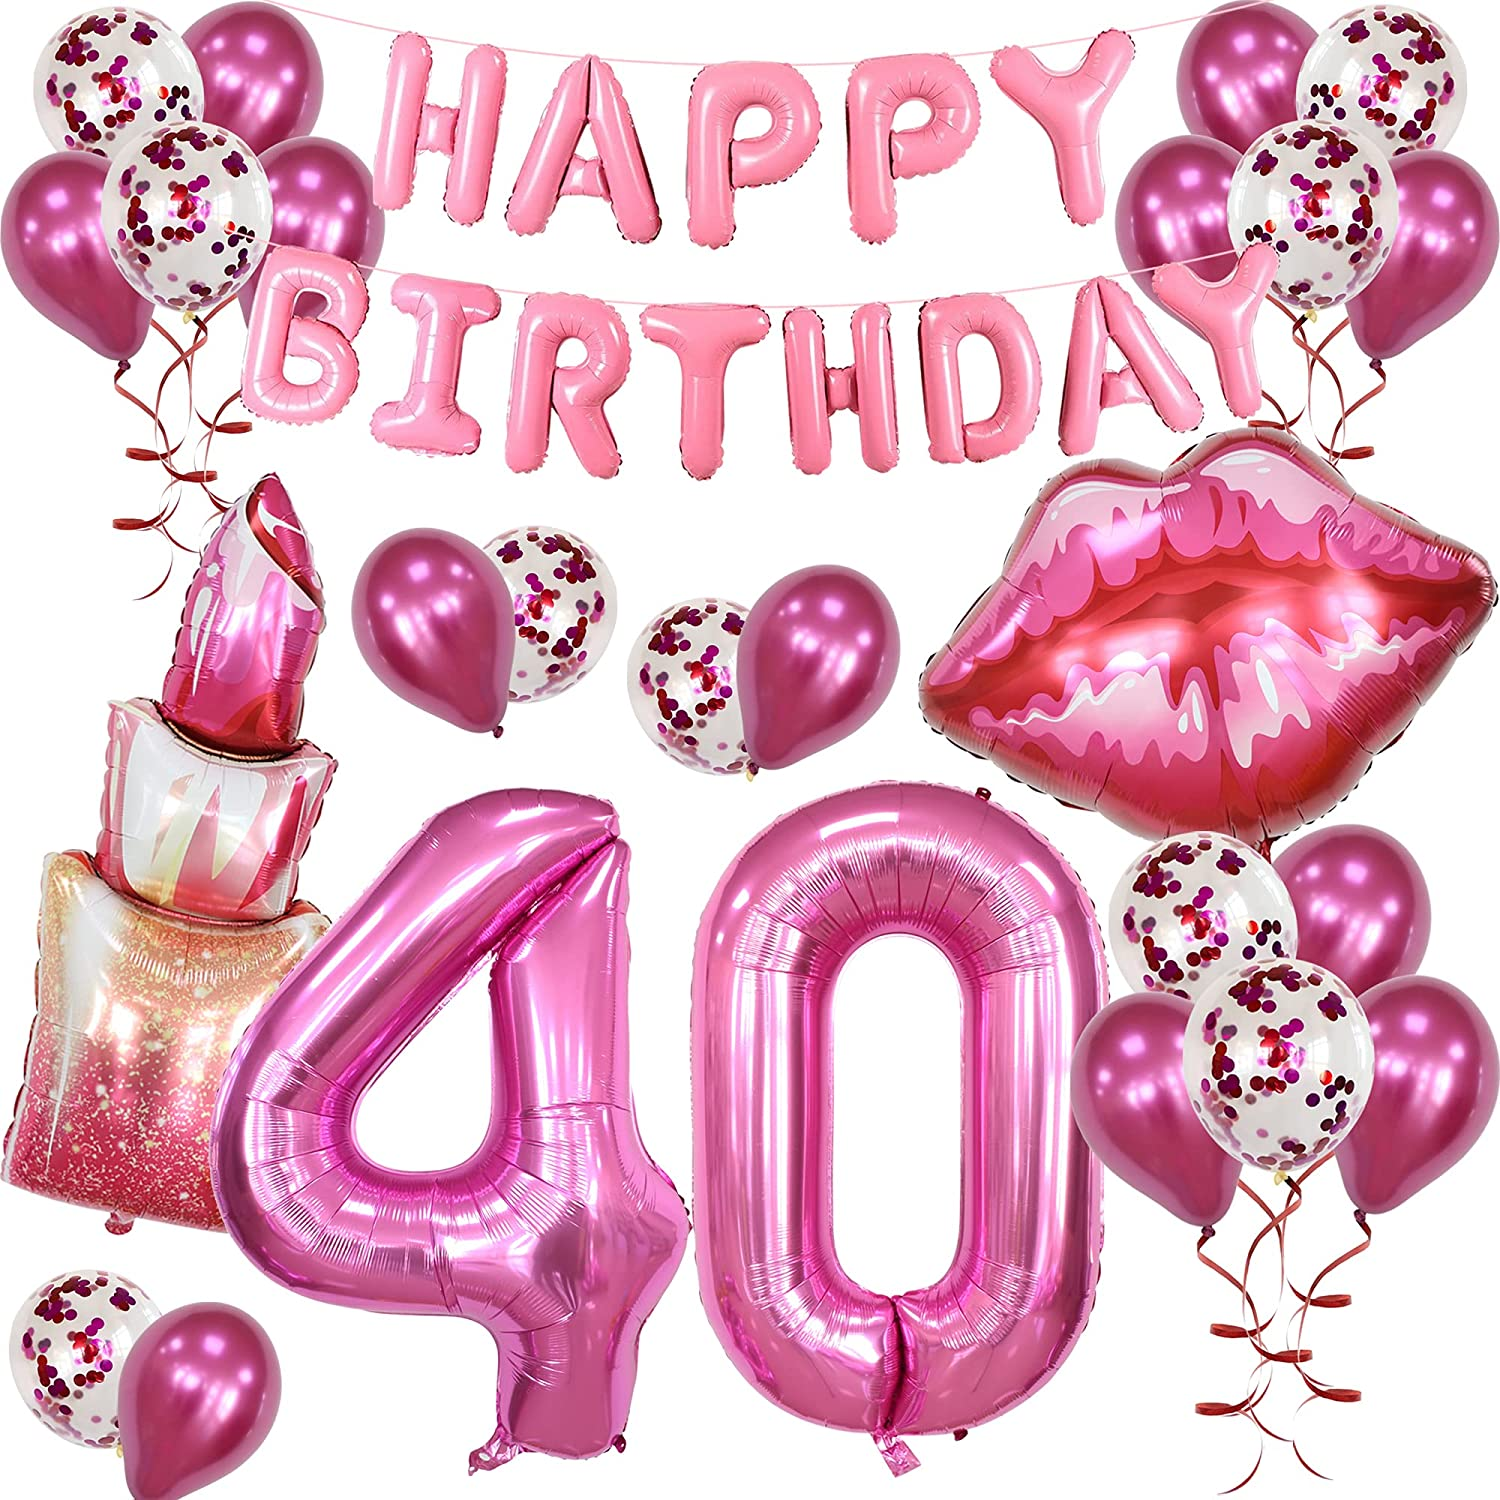 Discount is also underway Spa Makeup Birthday Party New color Balloon Supplies 40th Happy